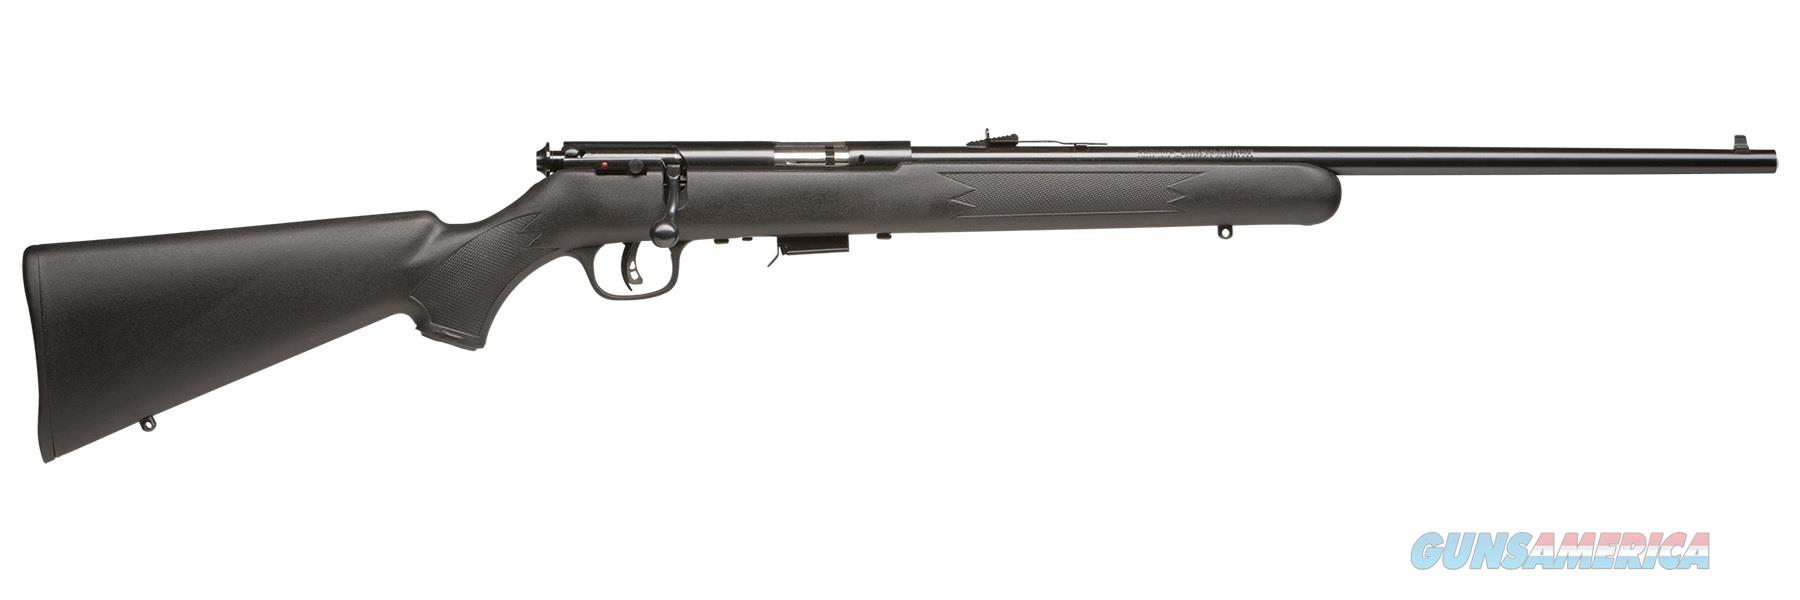 "Savage Mark II F Bolt-Action .22 LR 20.75"" 26700  Guns > Rifles > Savage Rifles > Other"